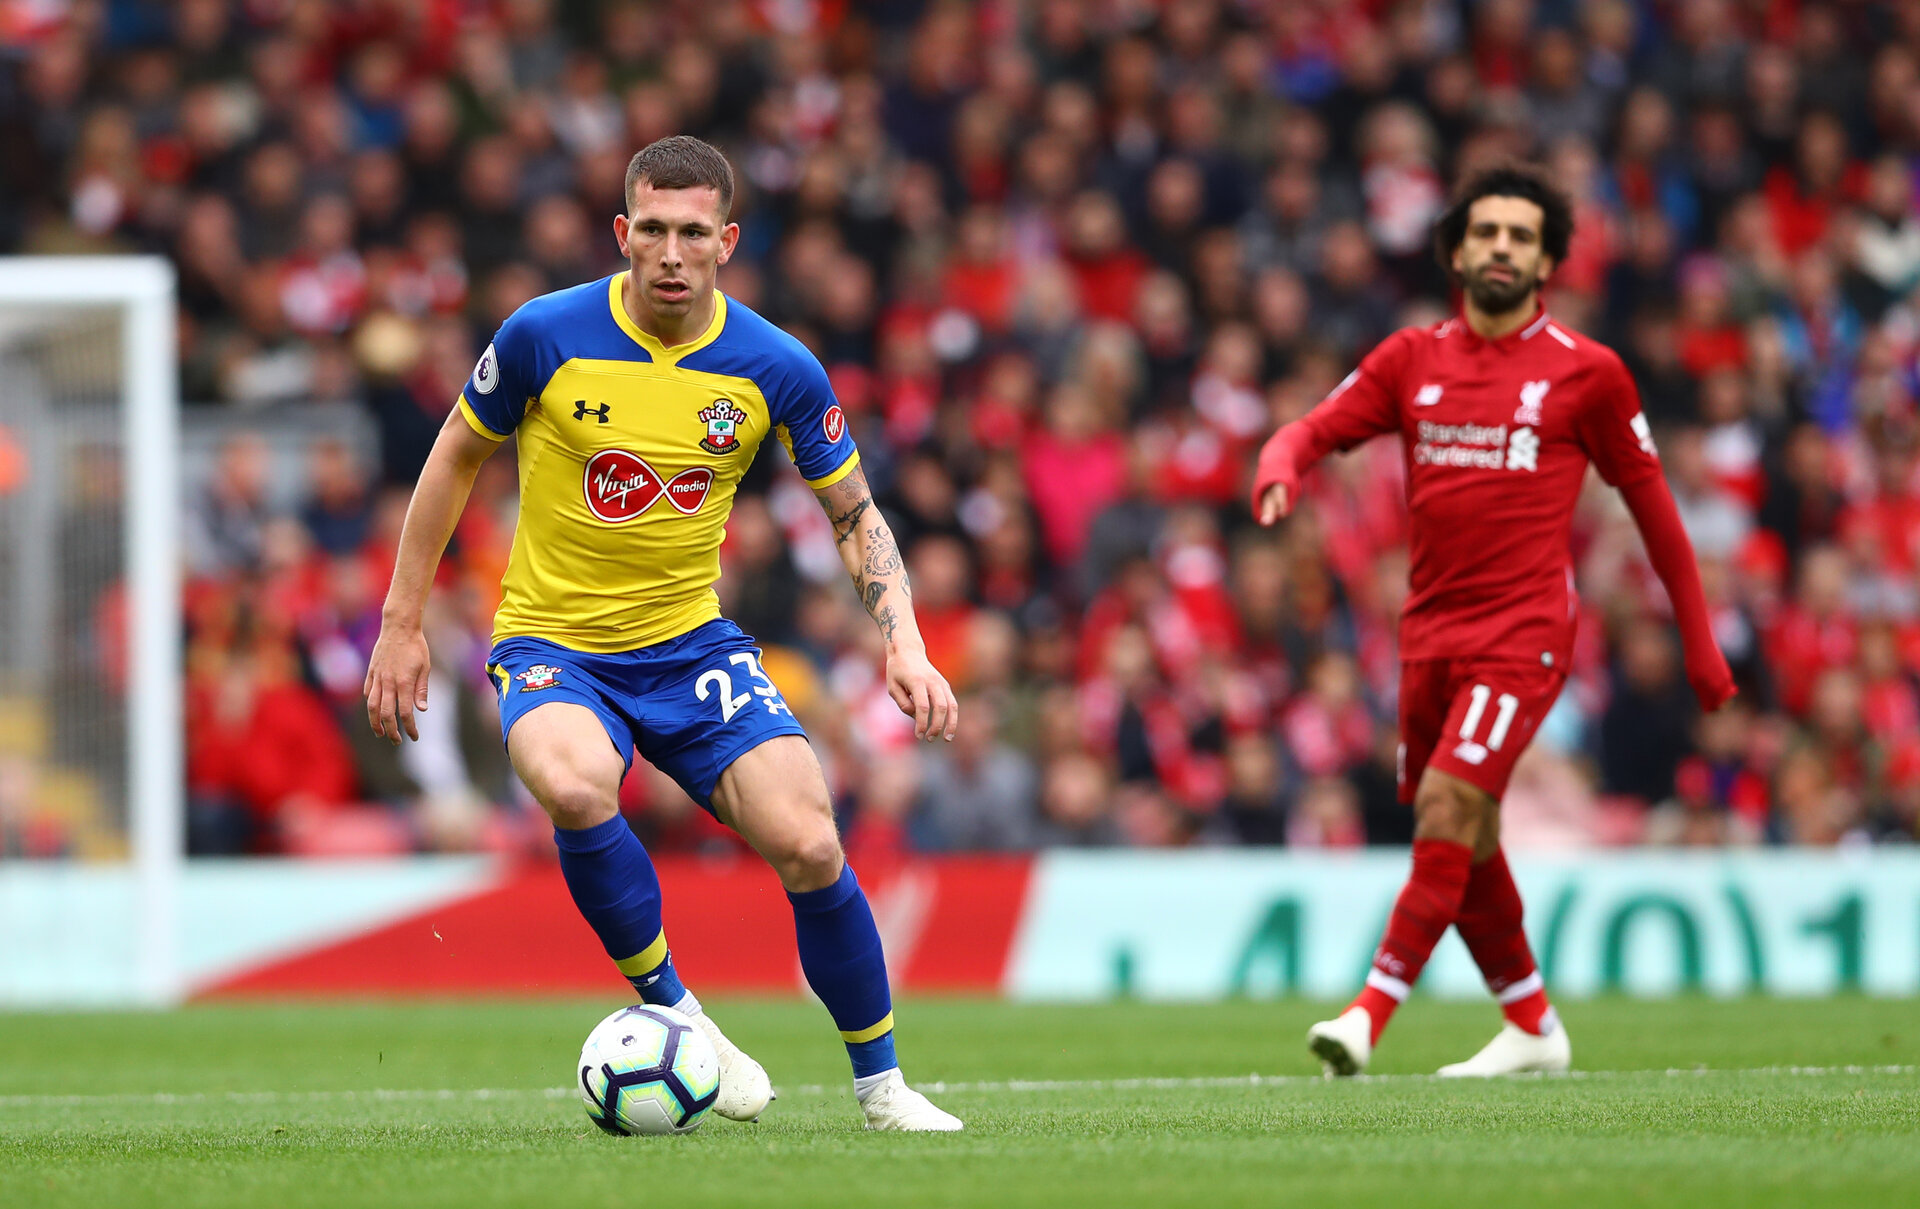 LIVERPOOL, ENGLAND - SEPTEMBER 22: Pierre-Emile Hojbjerg of Southampton during the Premier League match between Liverpool FC and Southampton FC at Anfield on September 22, 2018 in Liverpool, United Kingdom. (Photo by Matt Watson/Southampton FC via Getty Images)